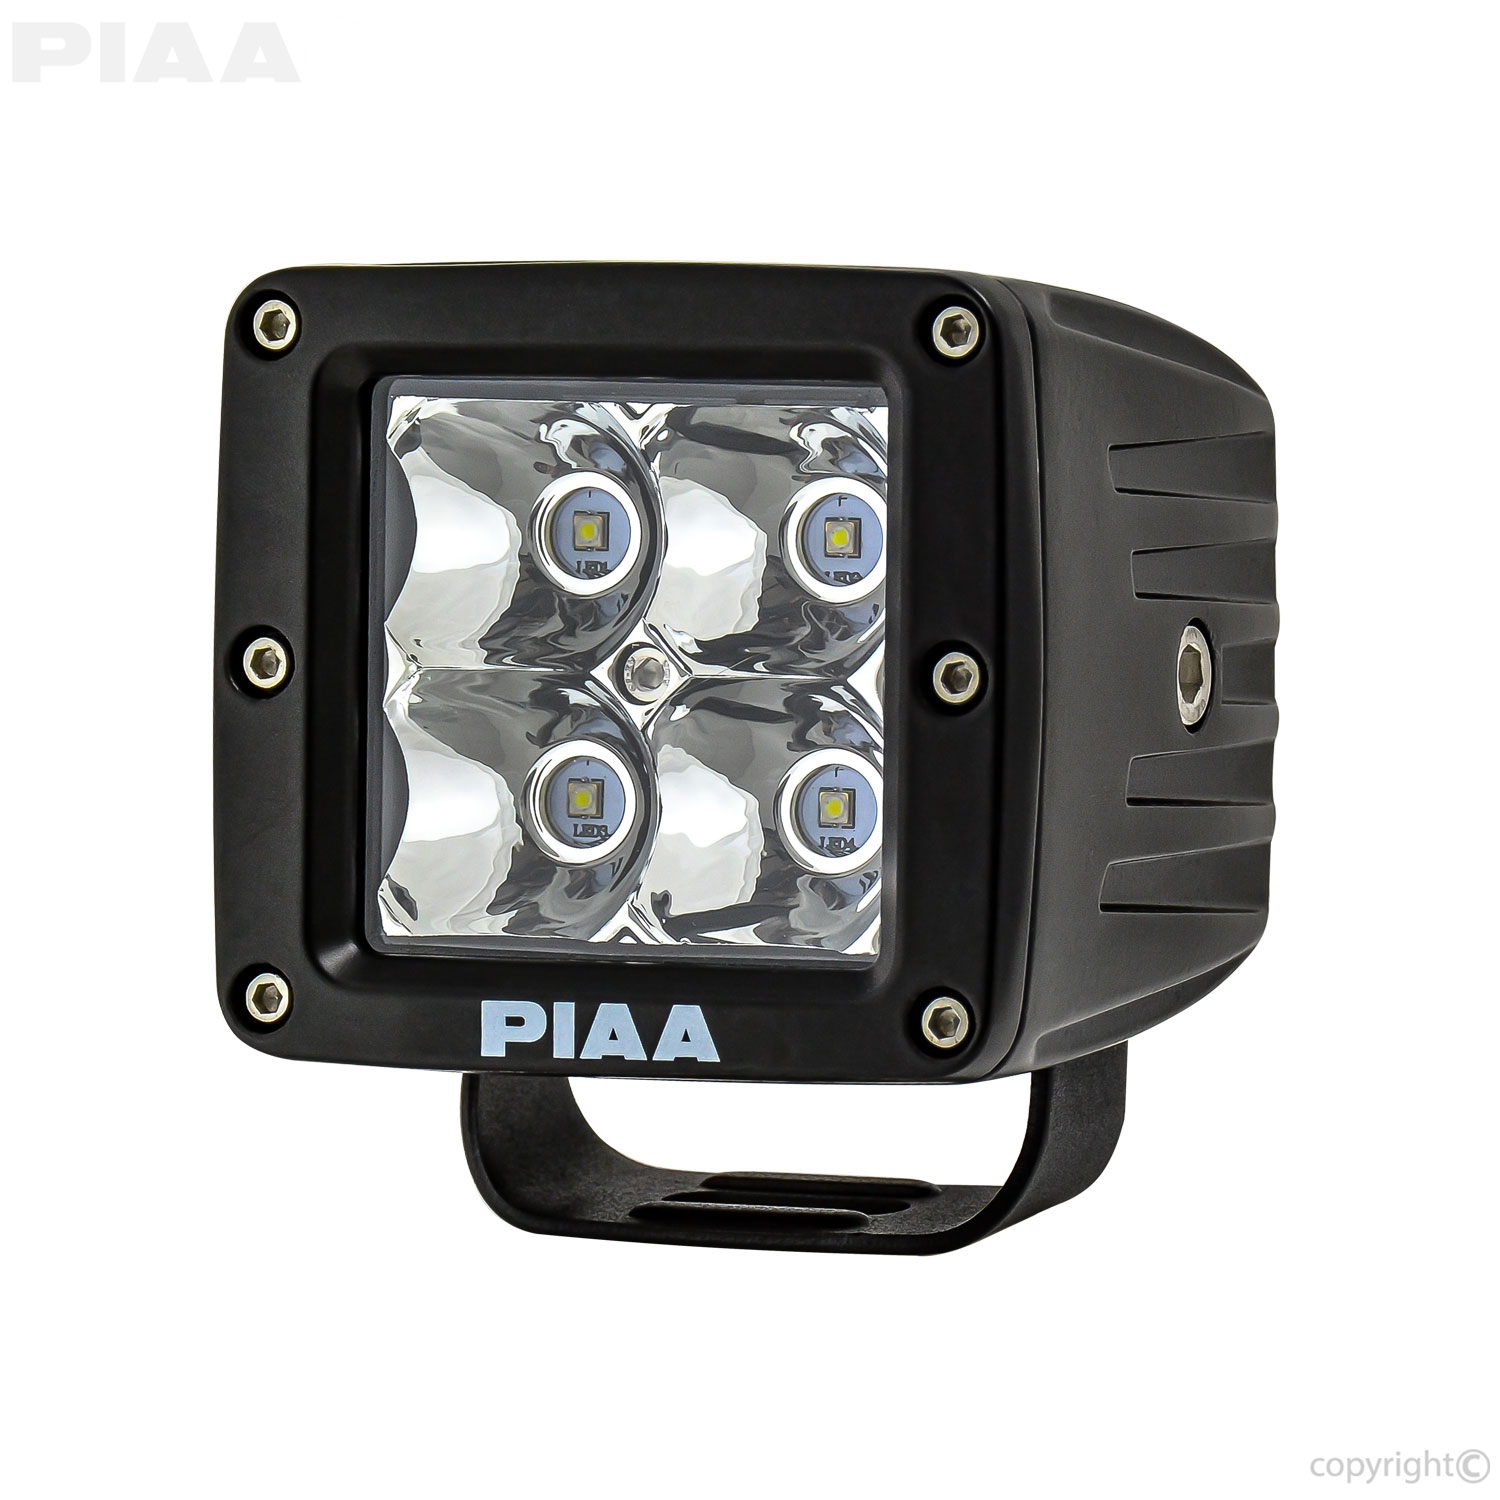 PIAA Quad Cube LED Spot Light